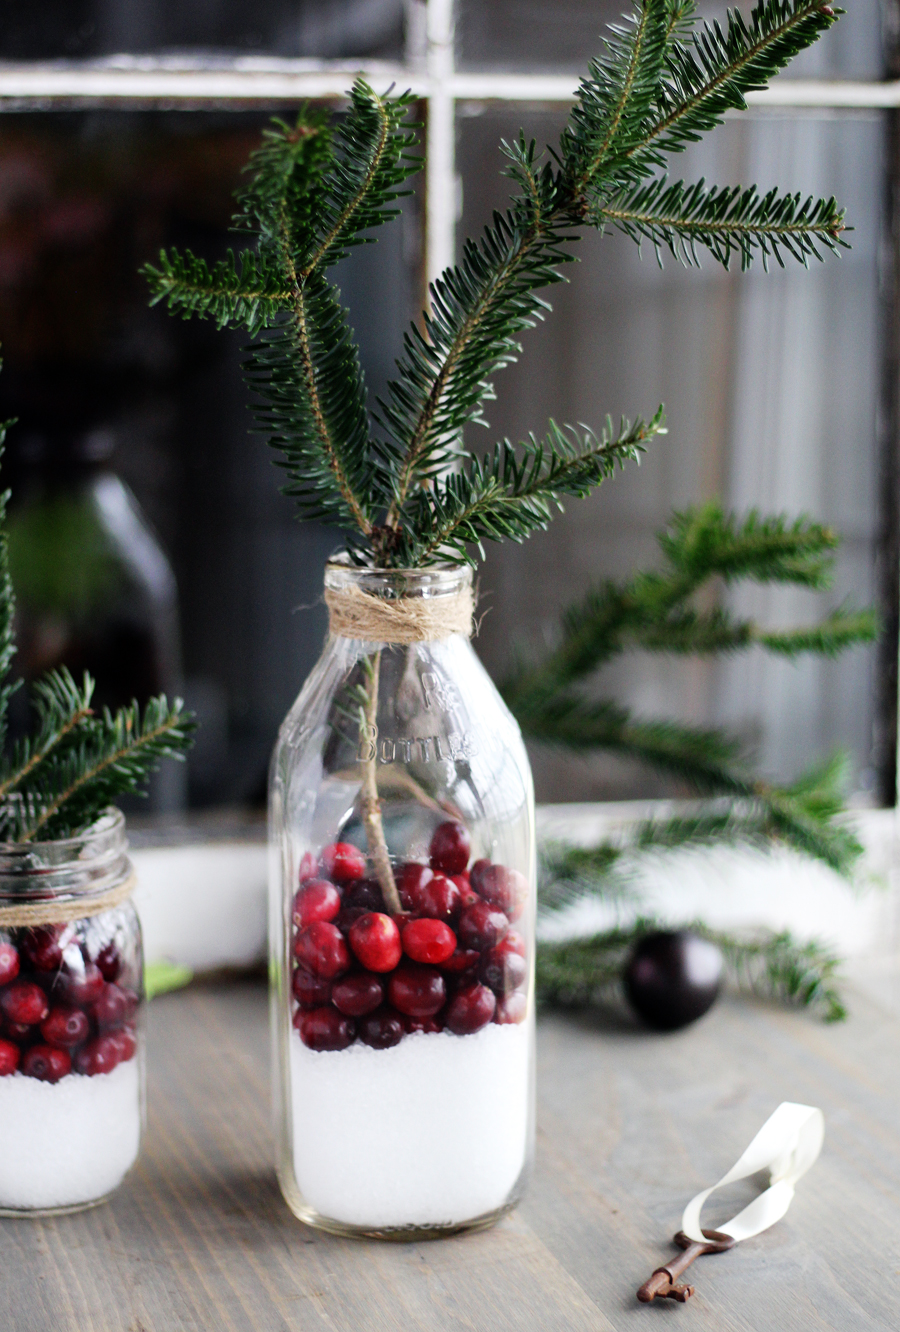 How To Make Cranberry Rustic Christmas Decor In 5 Minutes Buy This